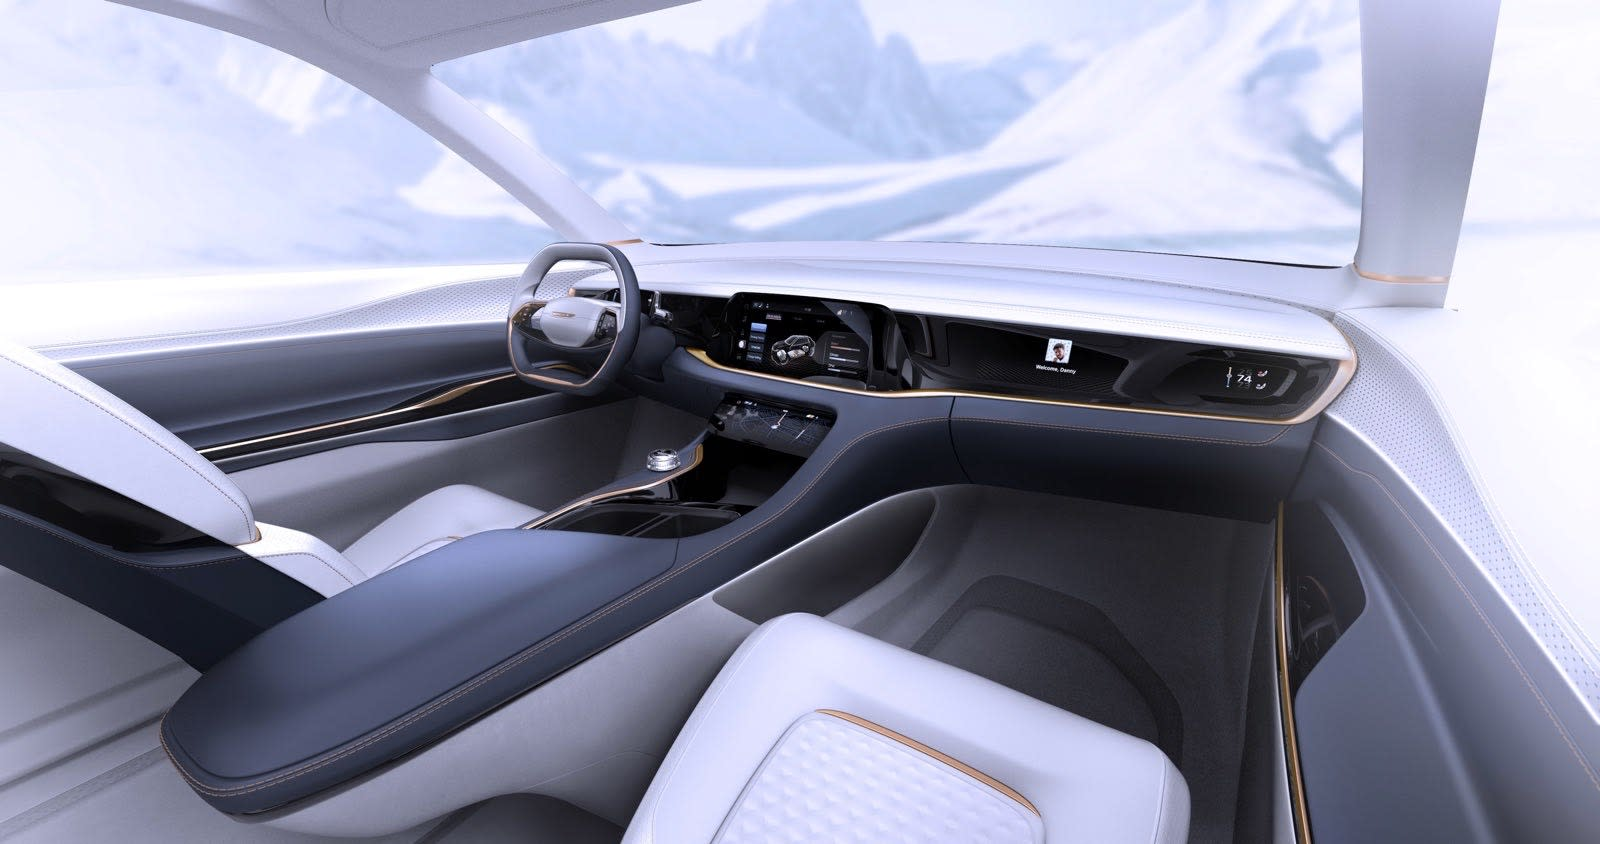 Fiat Chrysler Airflow Vision concept car interior